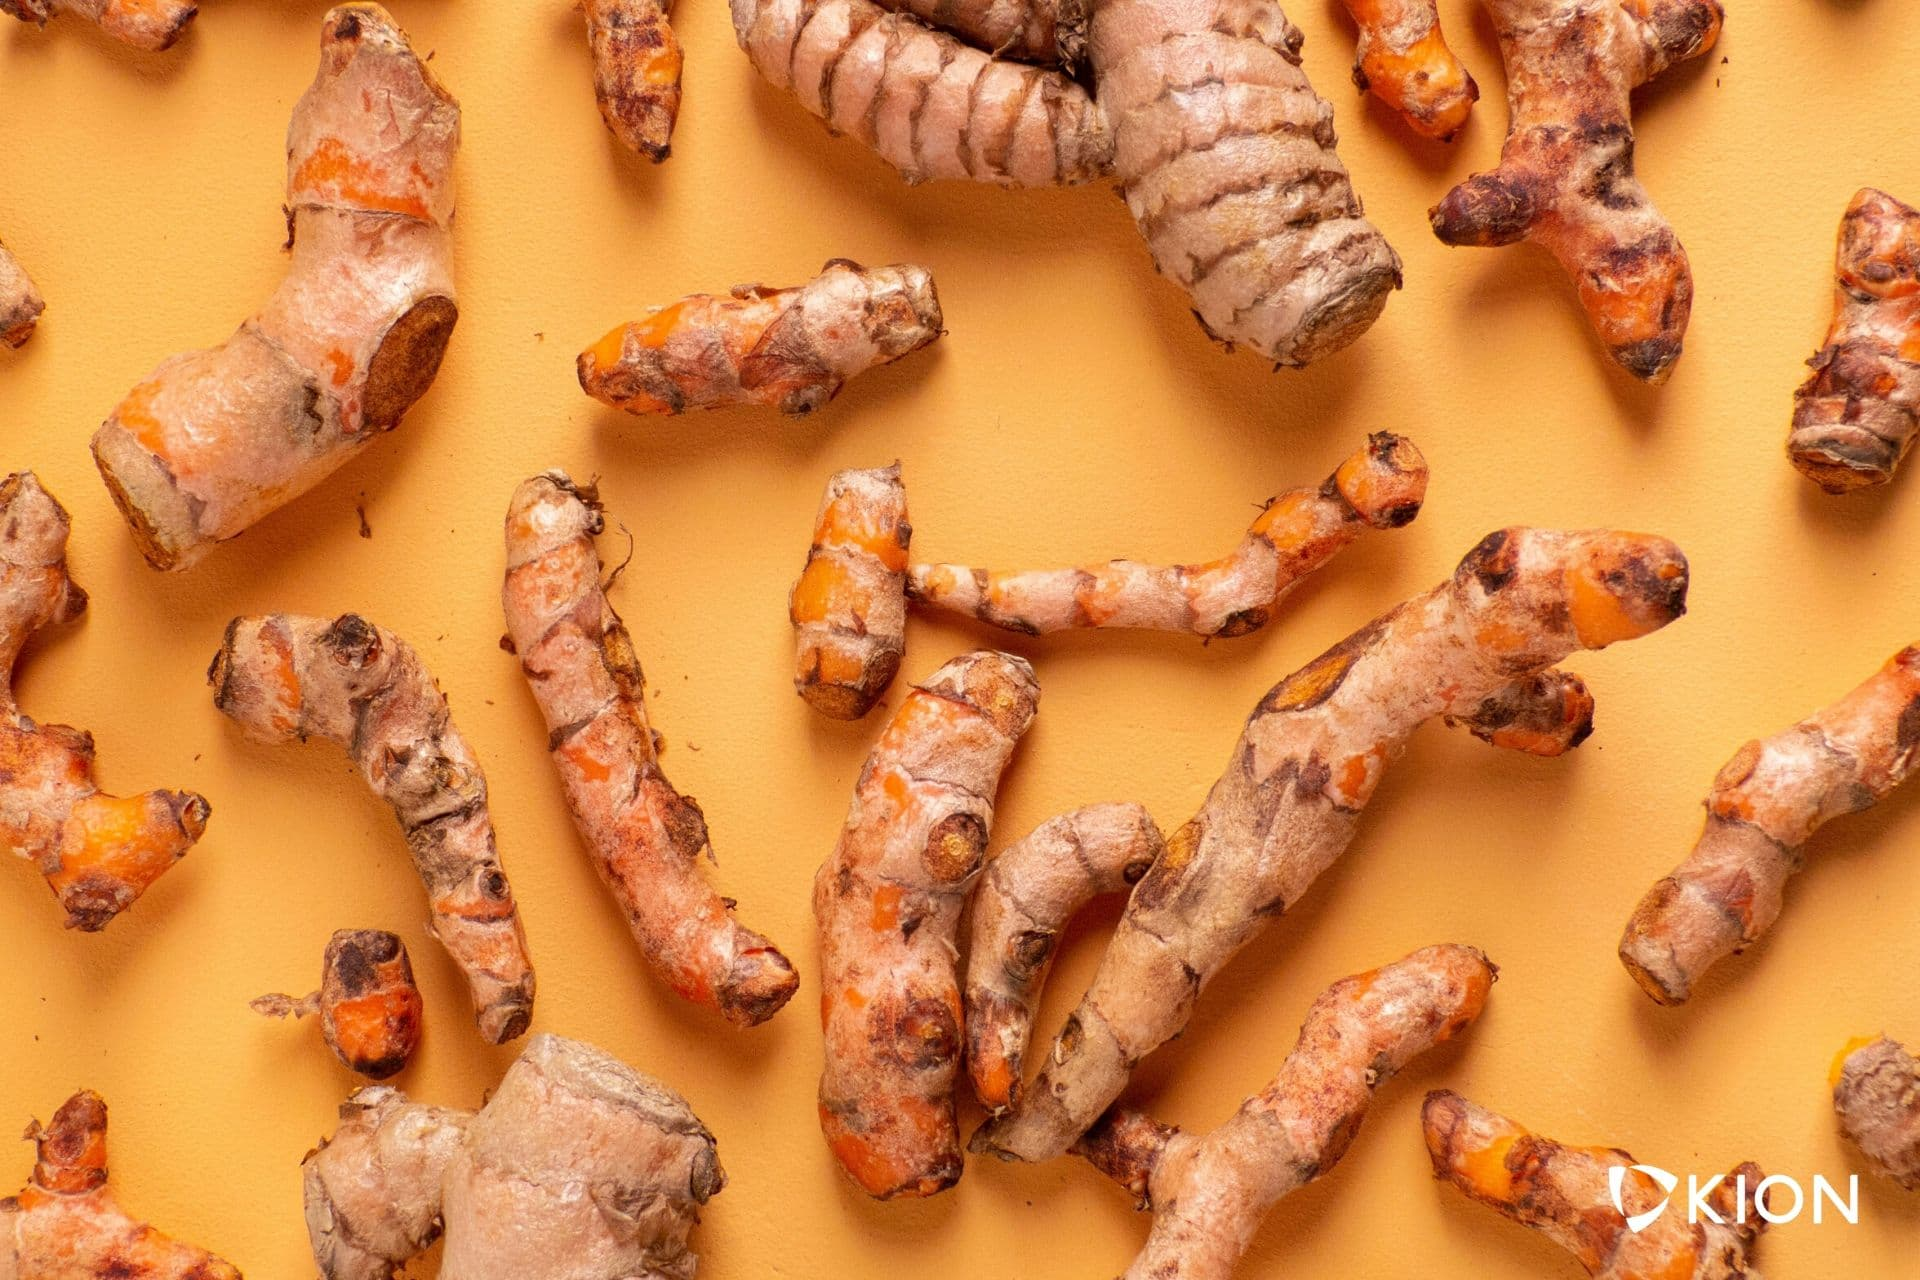 Beyond Curcumin: The Hidden Health Benefits in Turmeric You're Probably Missing Out On